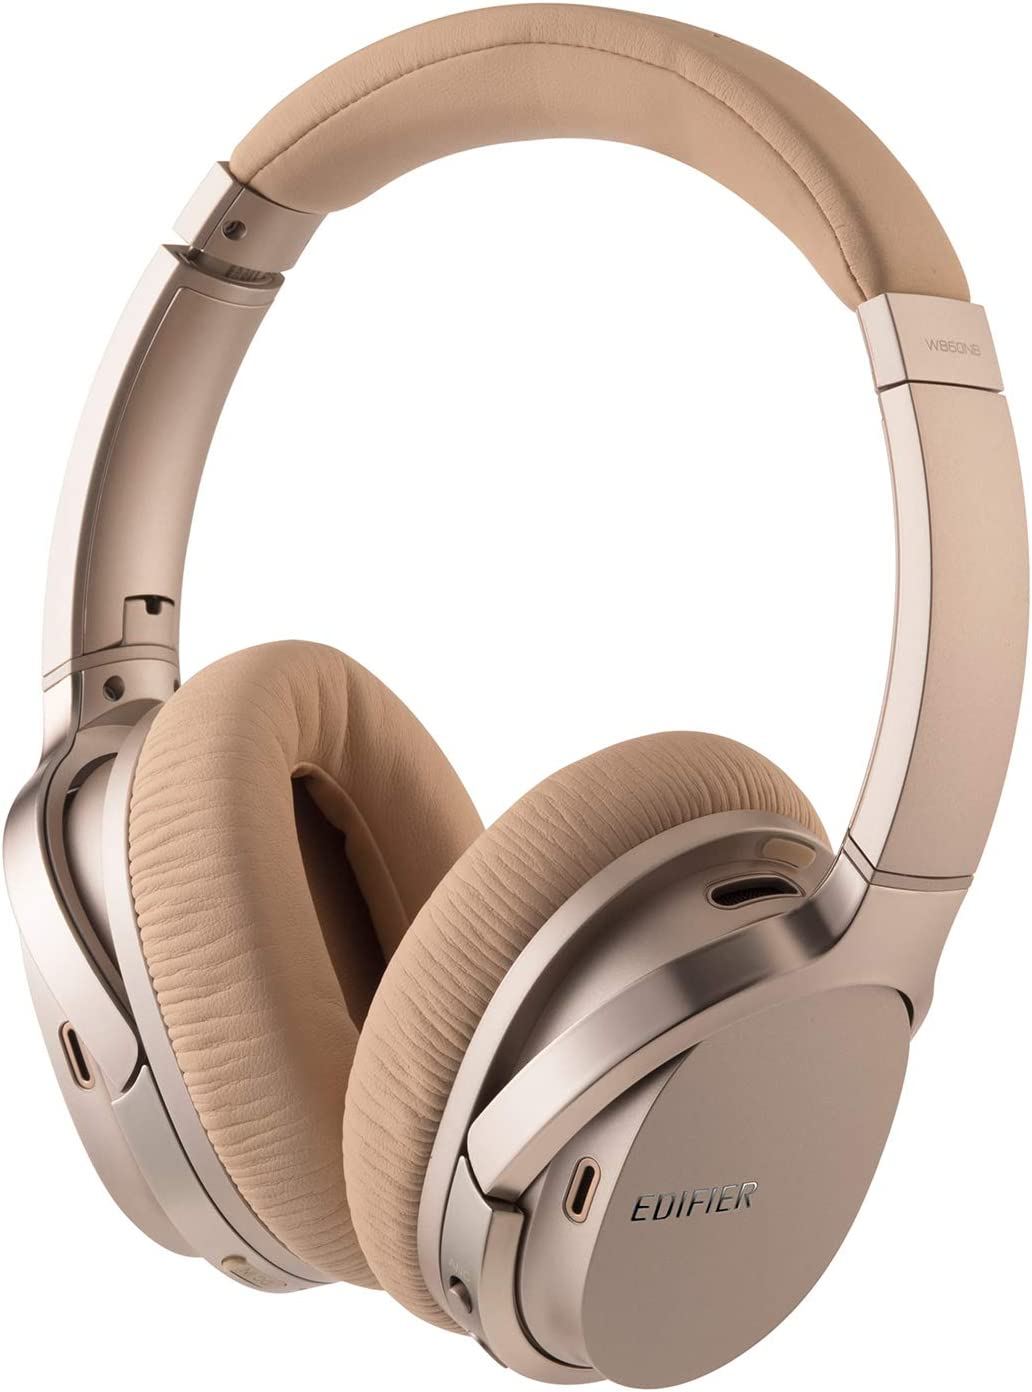 Edifier W860NB Active Noise Cancelling Foldable Over-Ear Bluetooth Headphones with Mic, Smart Touch, 25 Hours of ANC Battery Life, Travel Case, and NFC Pairing – Gold